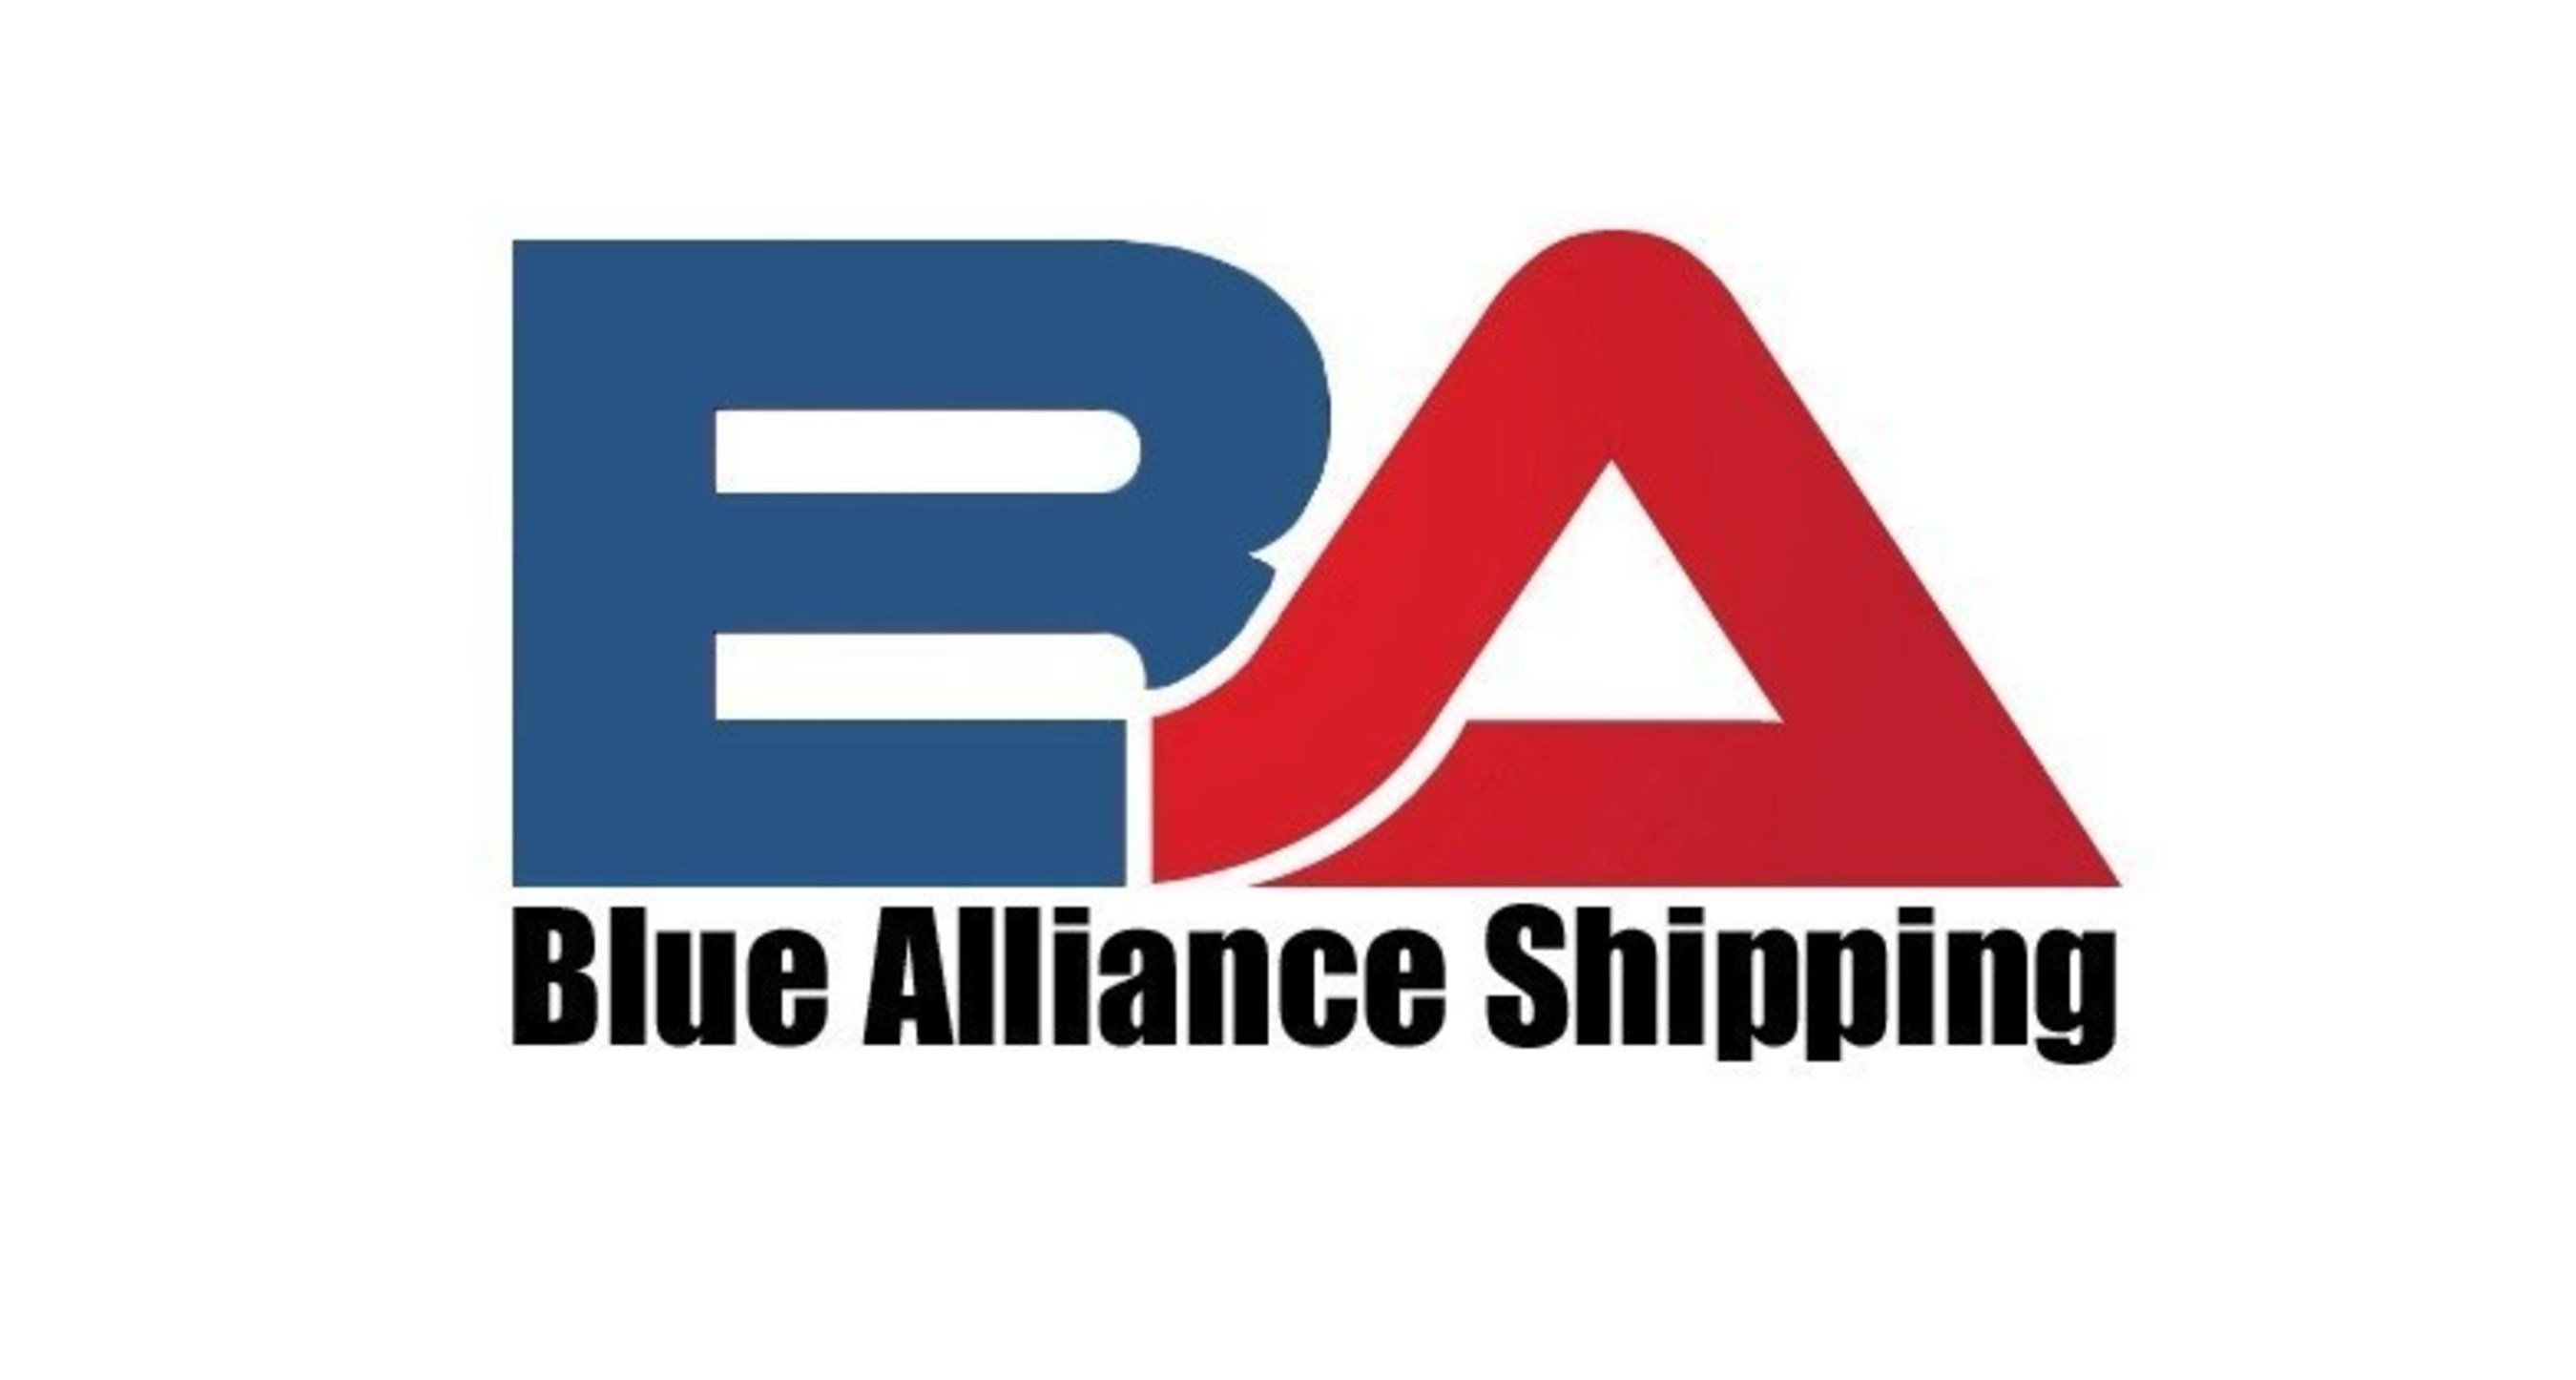 Foundation of Blue Alliance Shipping; ACC and Swiss Shipping Line Announce Joint Venture Company to